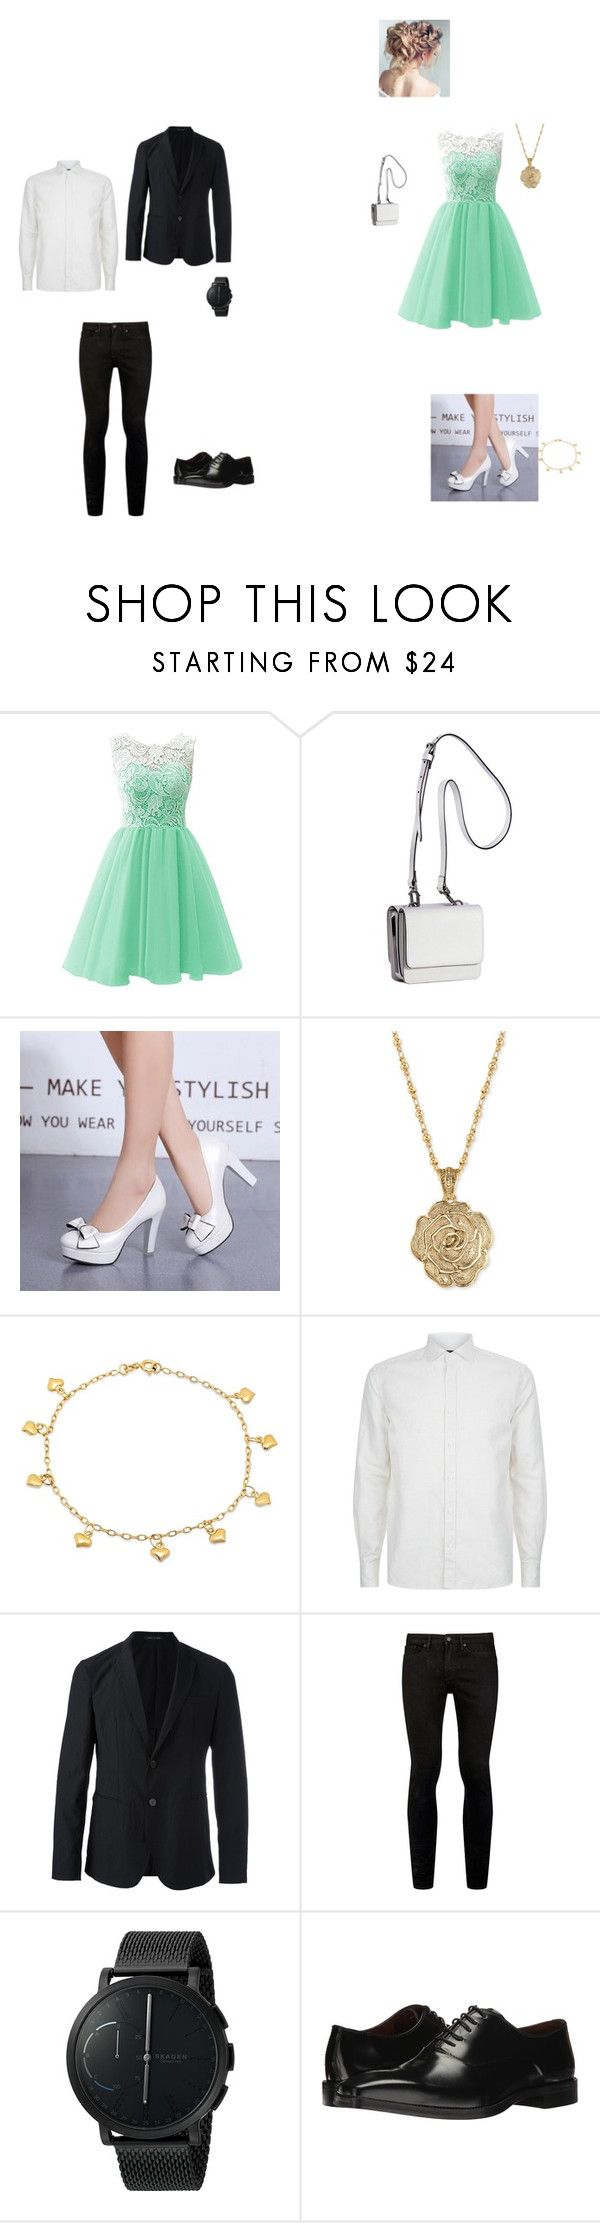 """To my love JA"" by raine-mcwaters ❤ liked on Polyvore featuring Kendall + Kylie, 2028, Sterling Essentials, Corneliani, Emporio Armani, Topman, Skagen and Massimo Matteo"